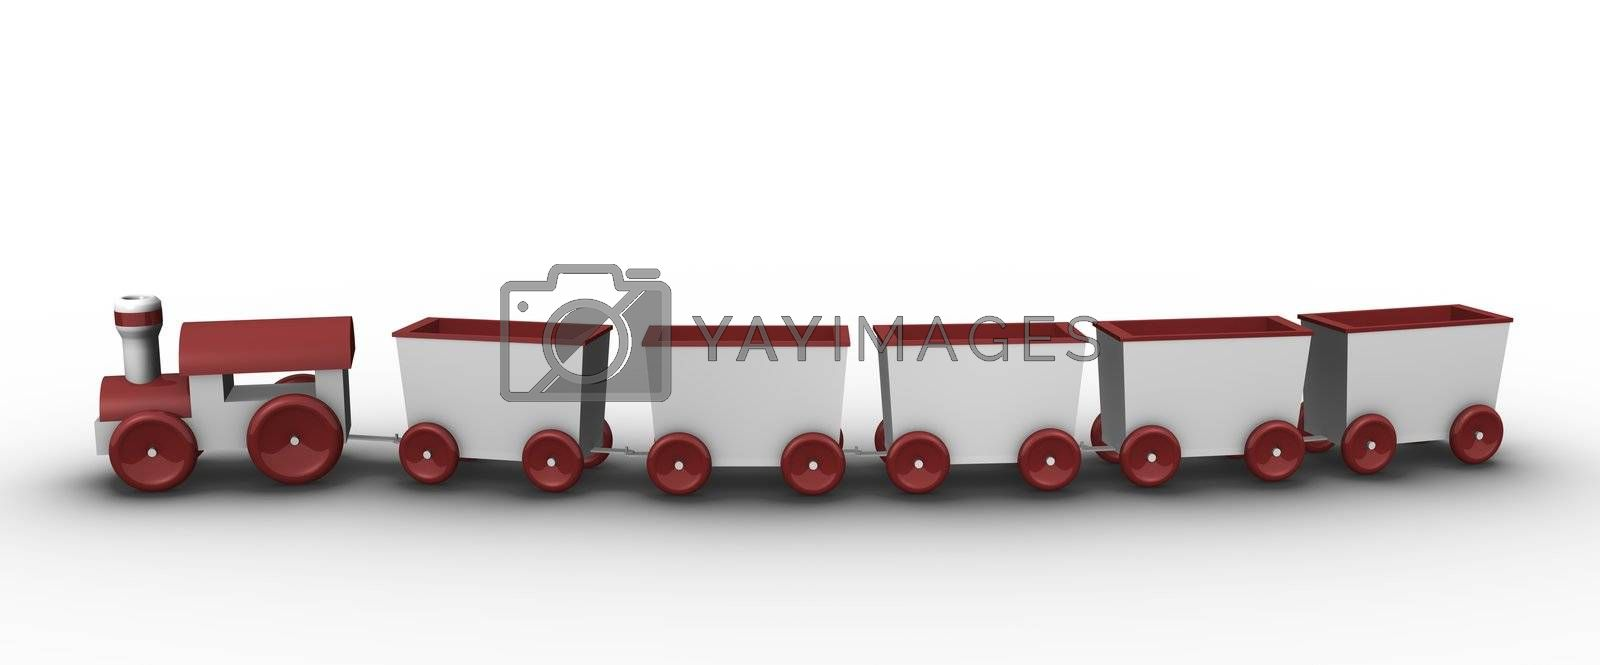 Toy train with 5 carriages; 3D rendered illustration.